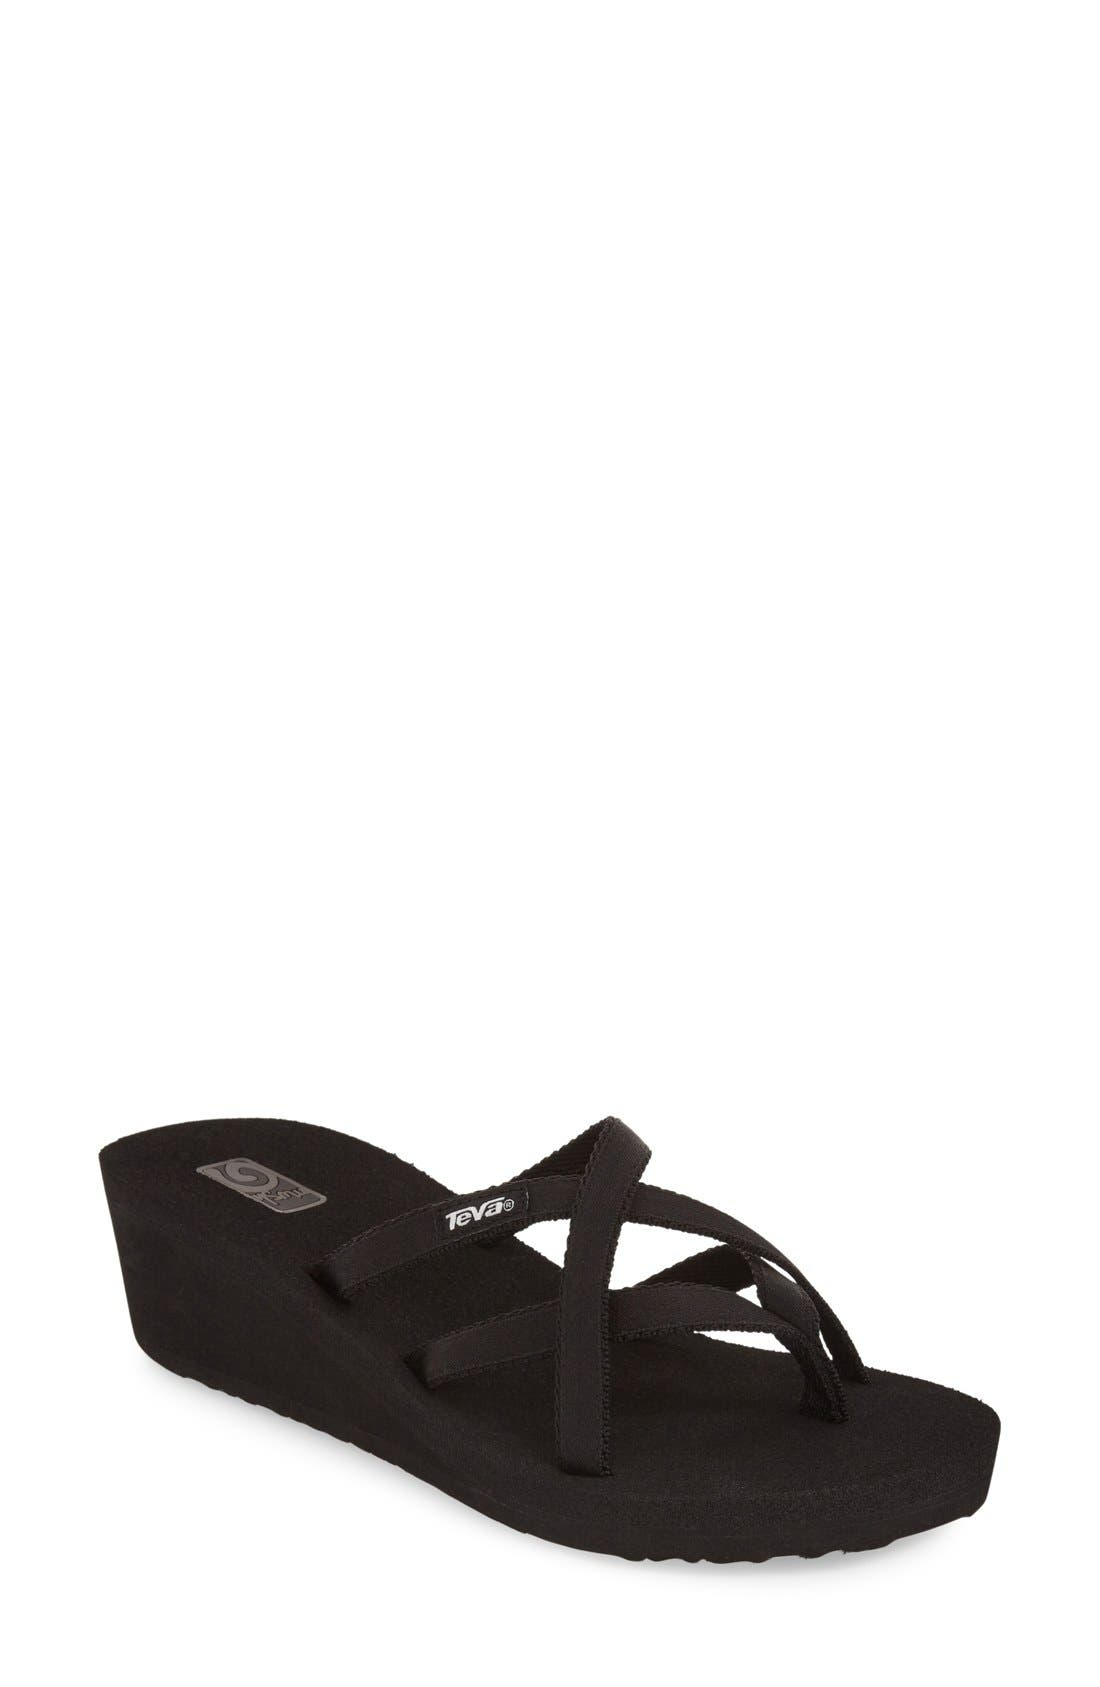 'Mandalyn' Wedge Sandal,                         Main,                         color, BLACK